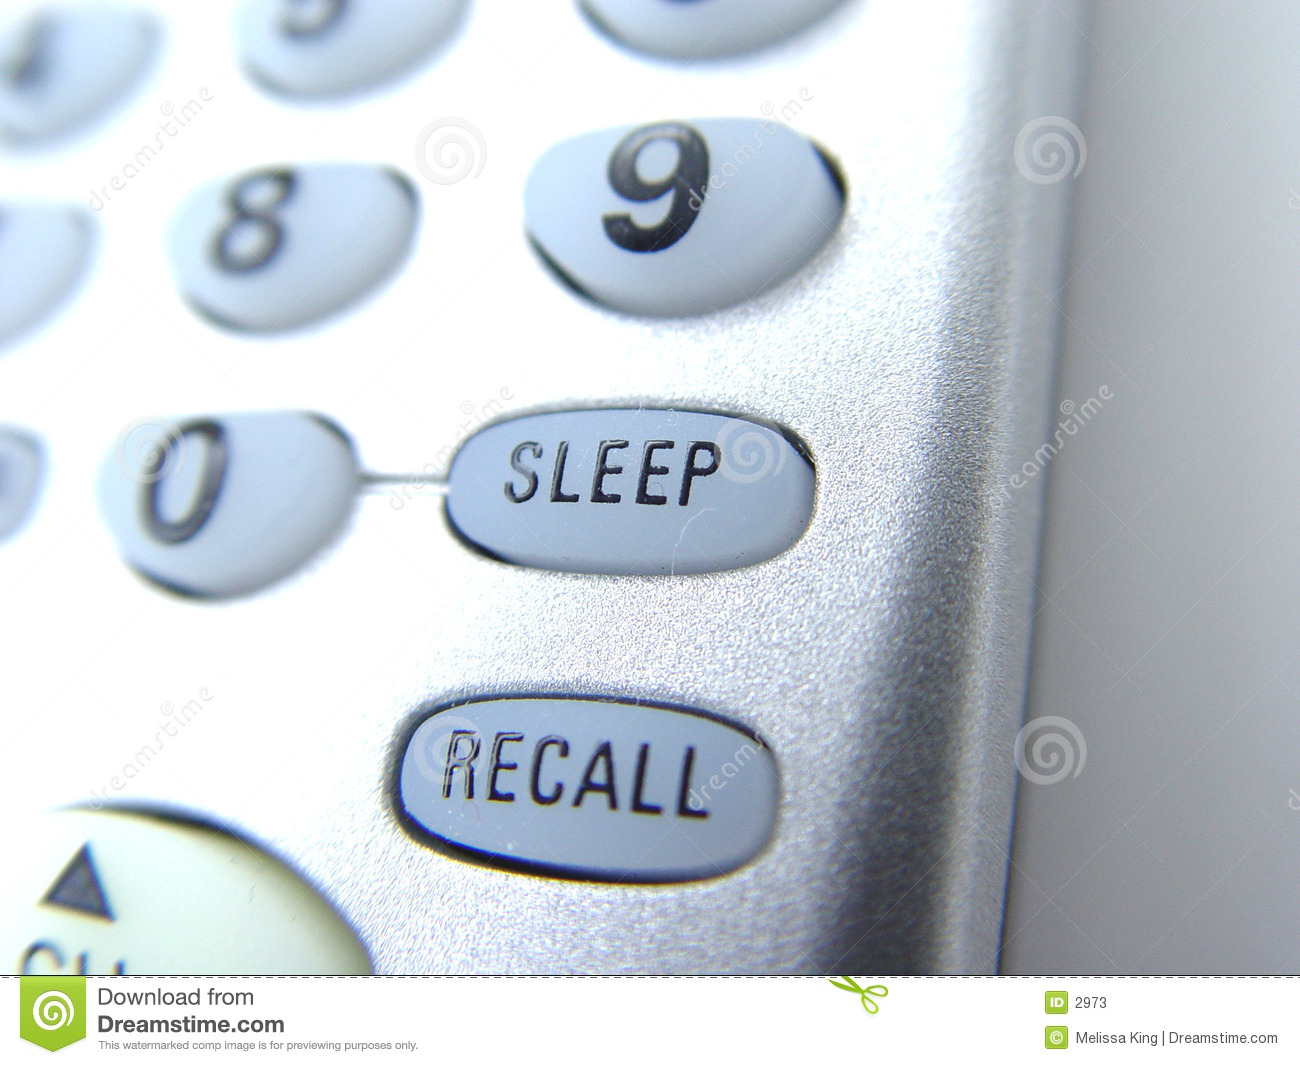 Remote with sleep button